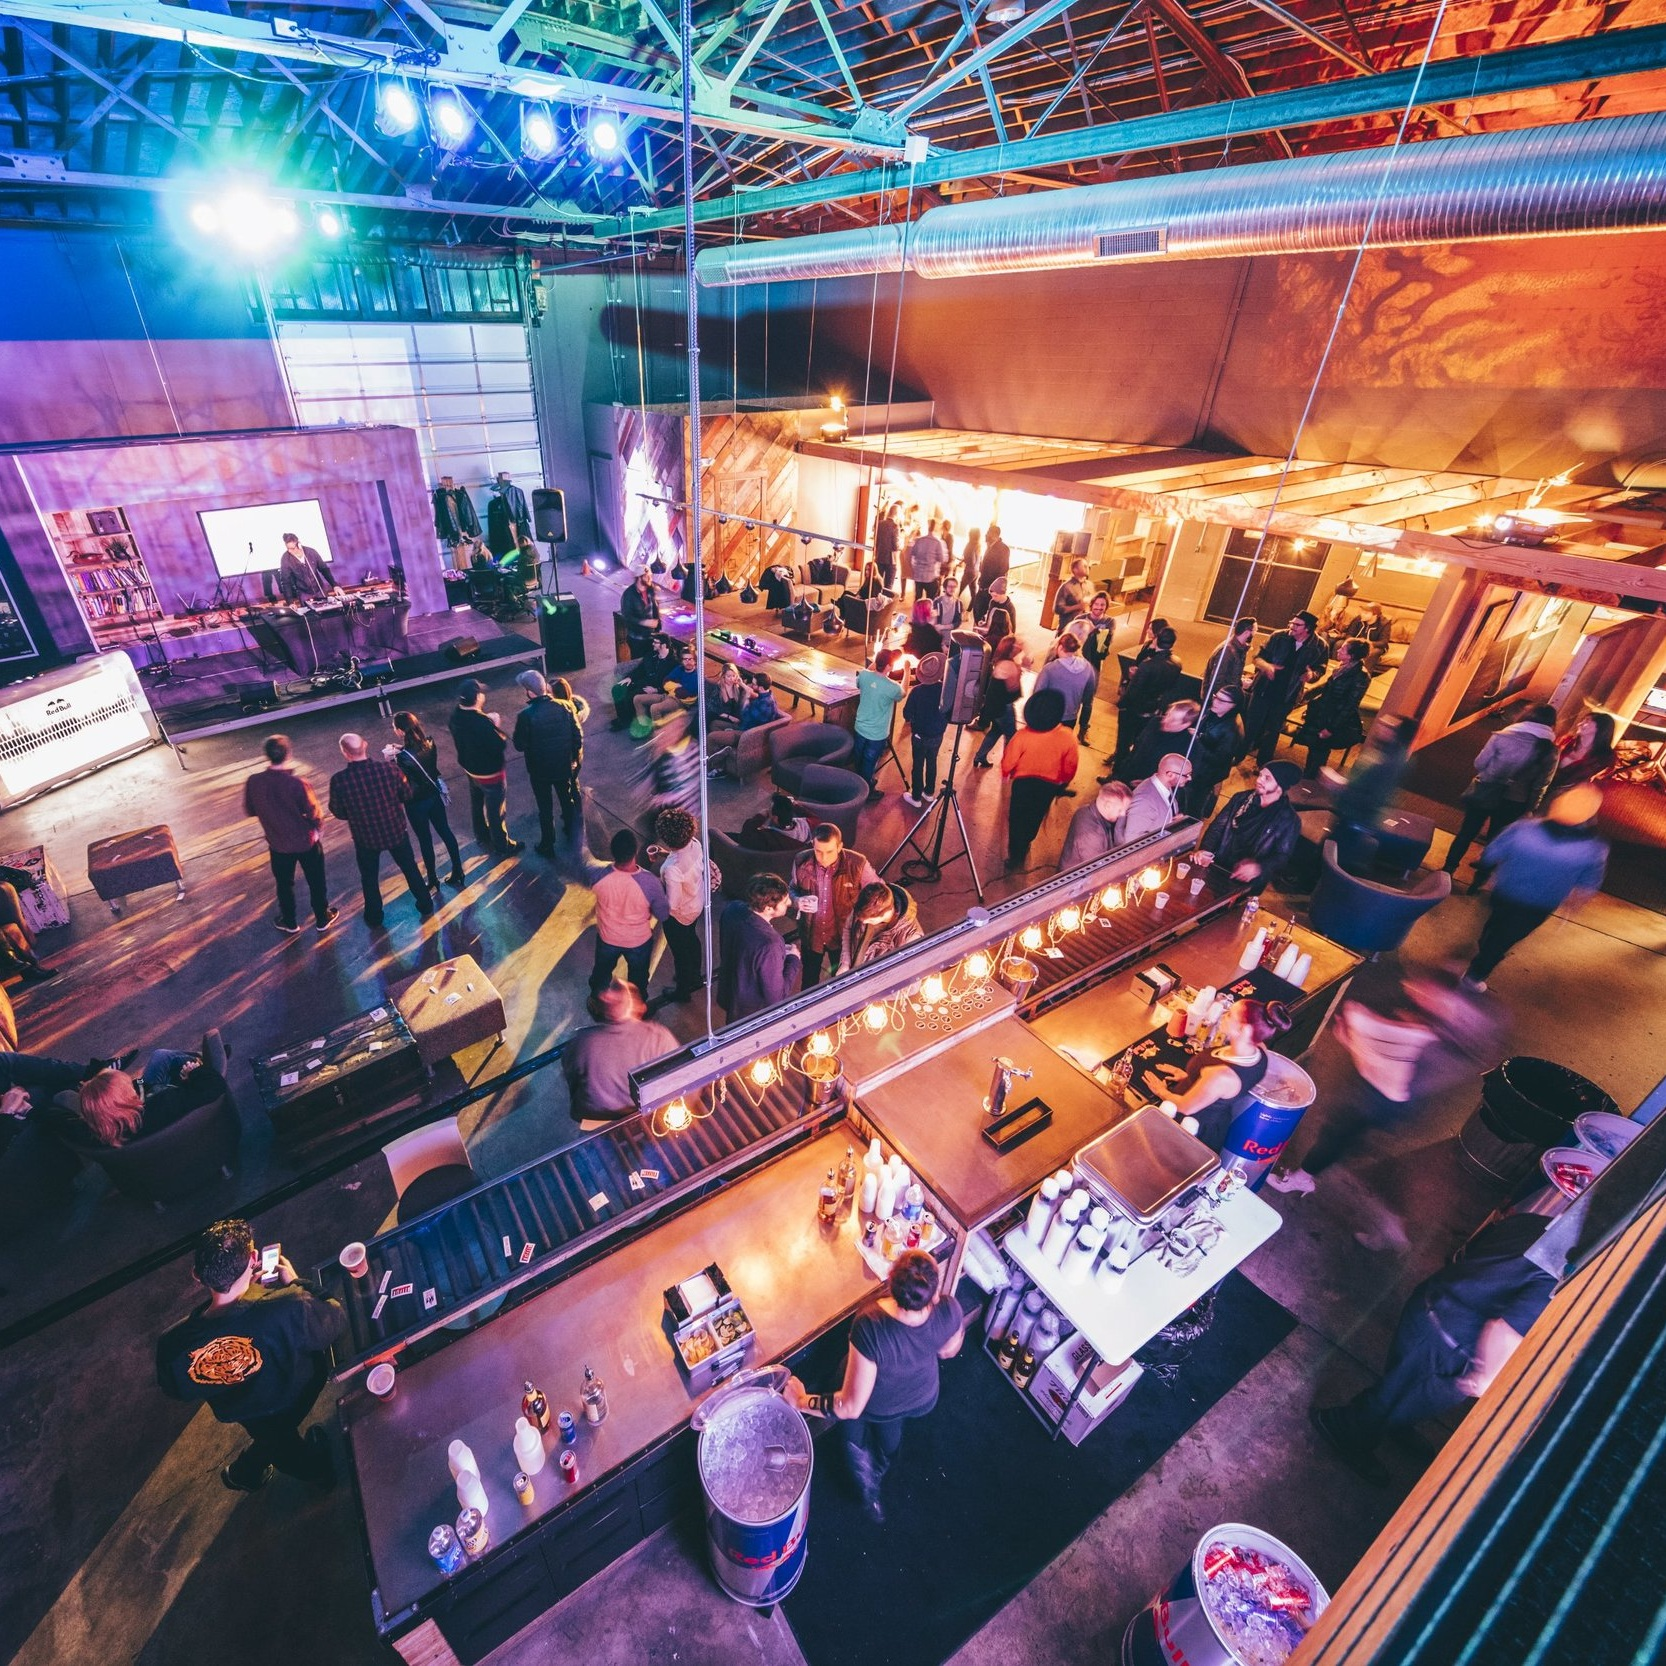 RED BULL HOUSE OF ART SYNESTHESIA -